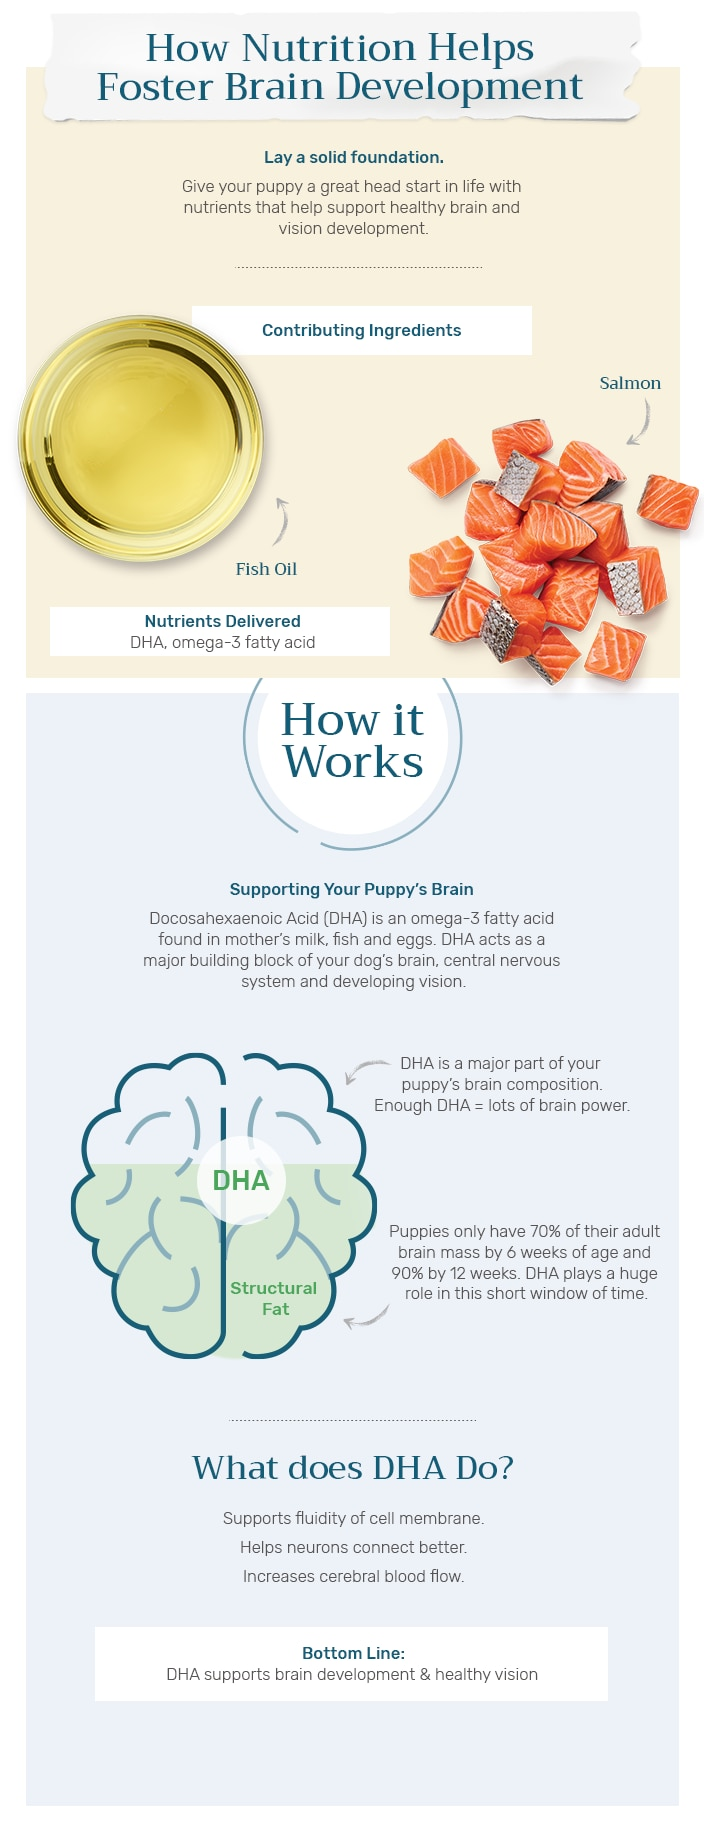 How DHA supports brain development infographic